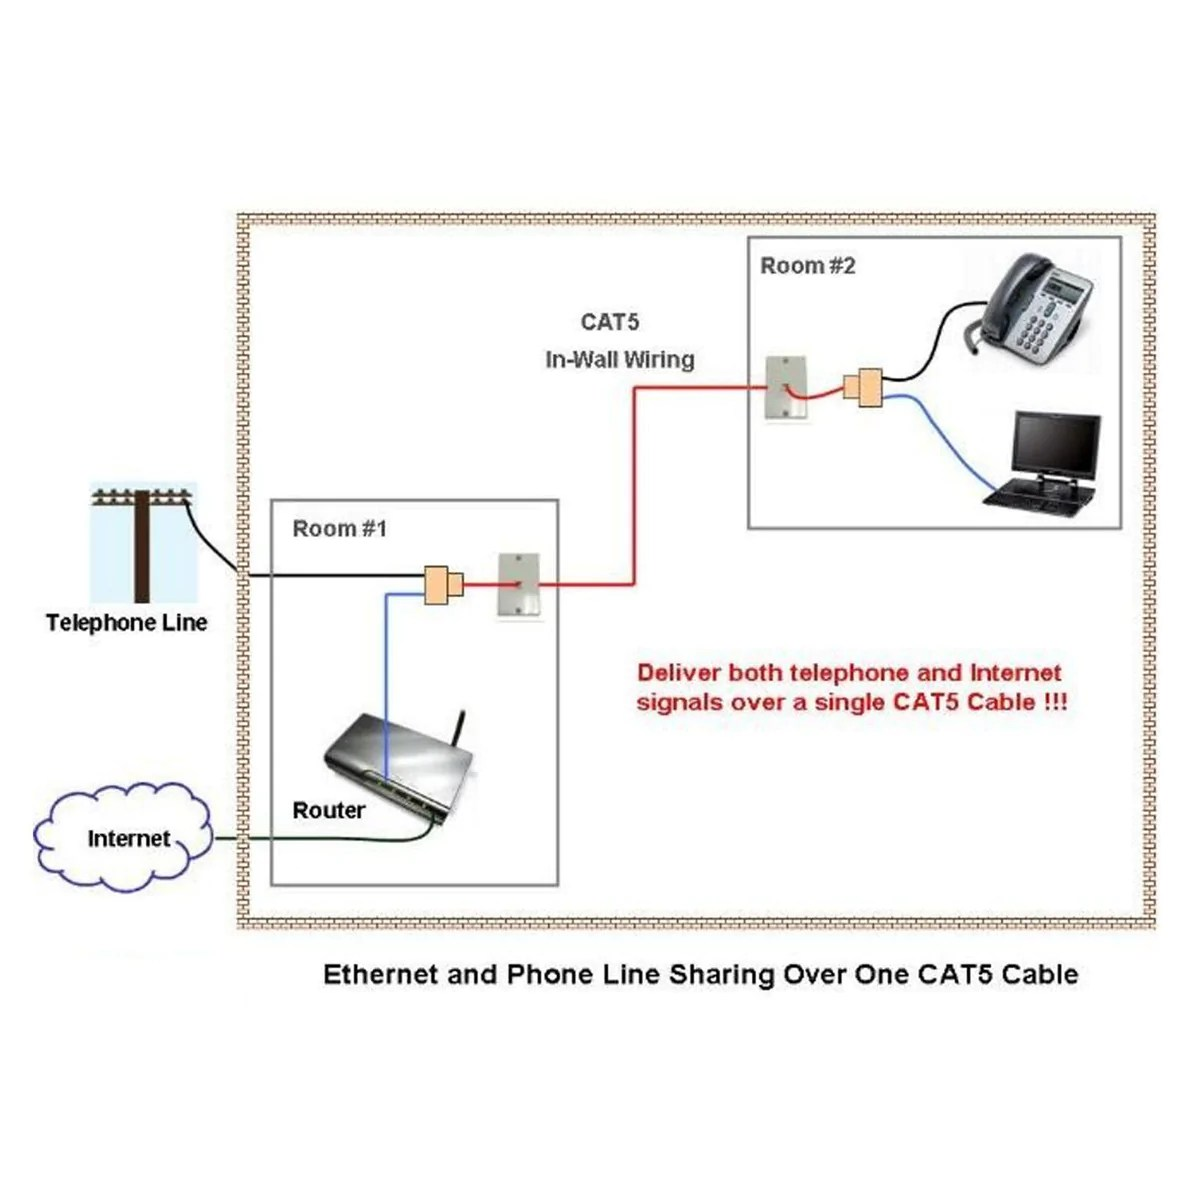 small resolution of  cat 5 phone wire diagram rj45 rj11 splitter cable sharing kit for ethernet and phone linesrj45 rj11 splitter cable sharing kit